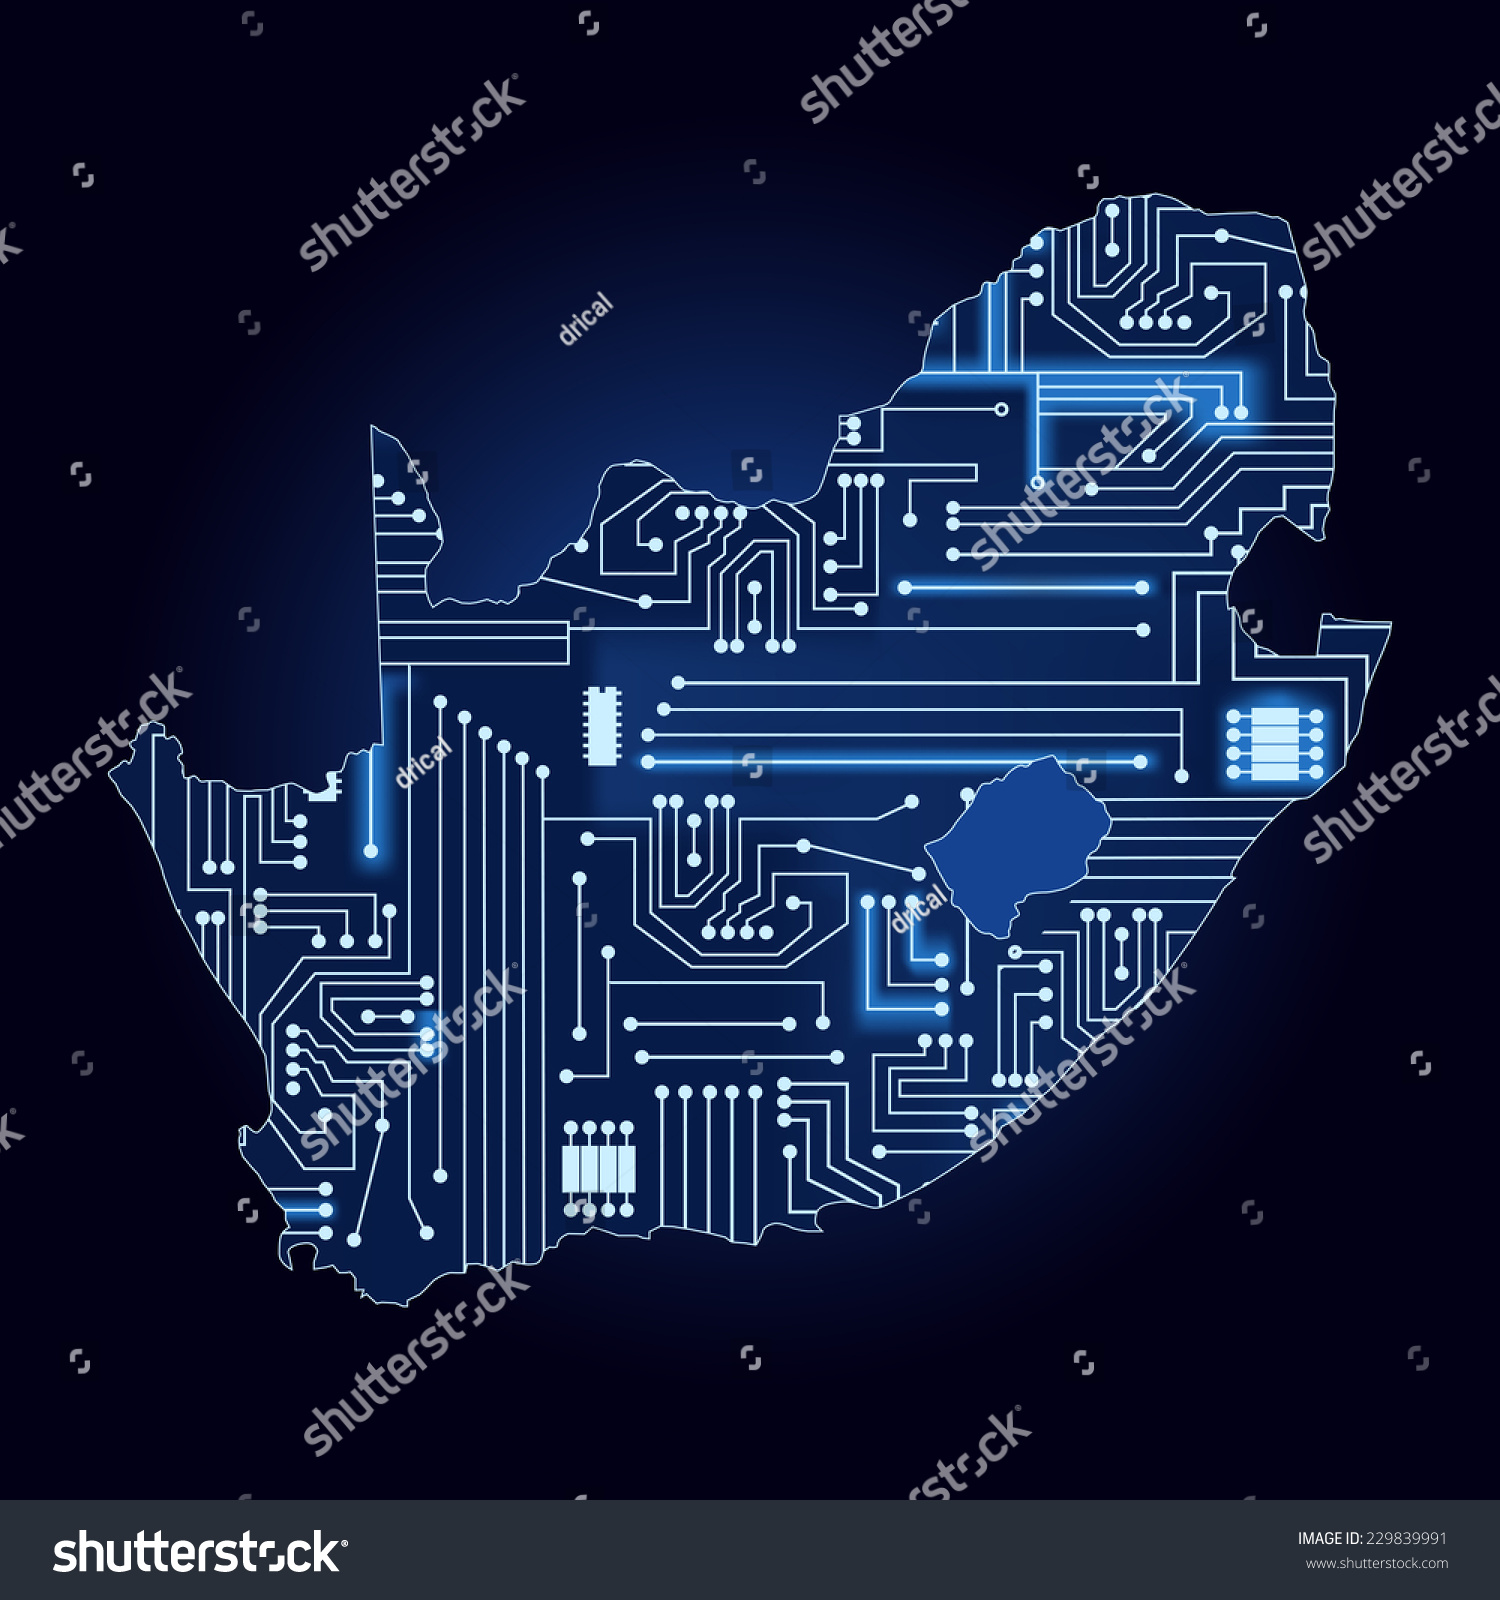 Map South Africa Electronic Circuit Contour Stock Vector (Royalty